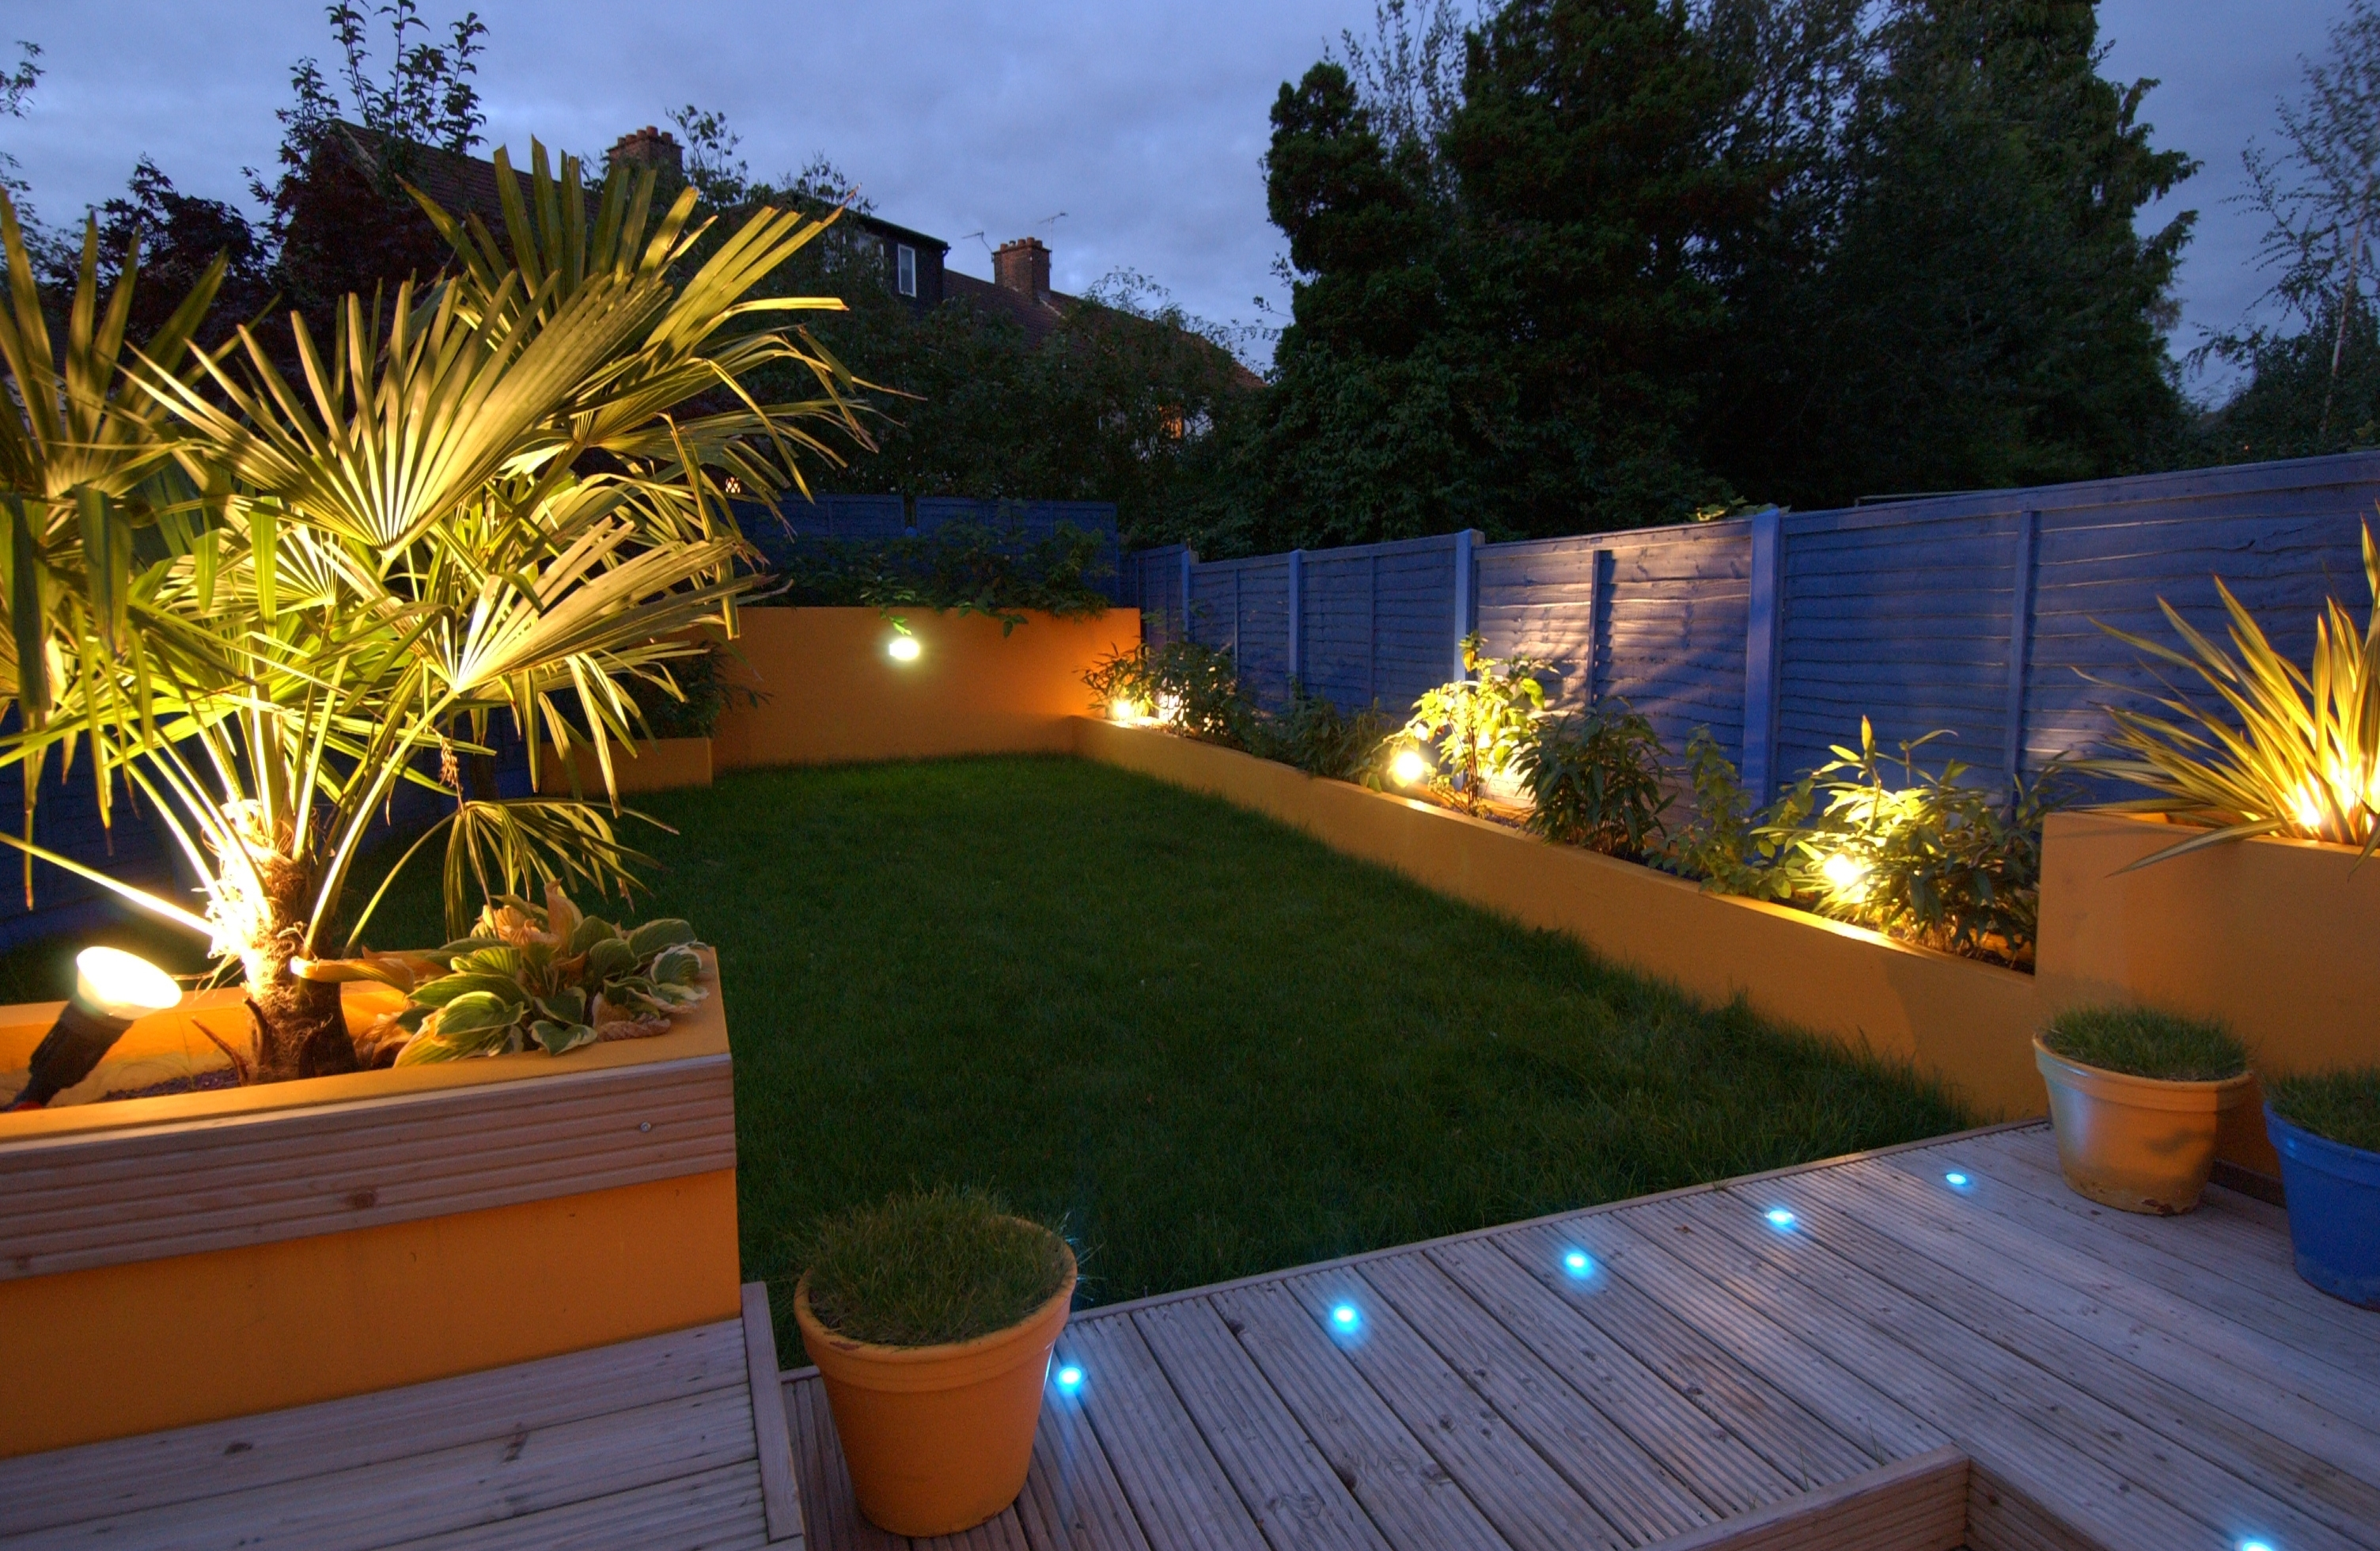 8 Reasons Why Every Home Should Have Outdoor Lighting Juice Throughout 2018 Electric Outdoor Lighting Garden (View 3 of 20)